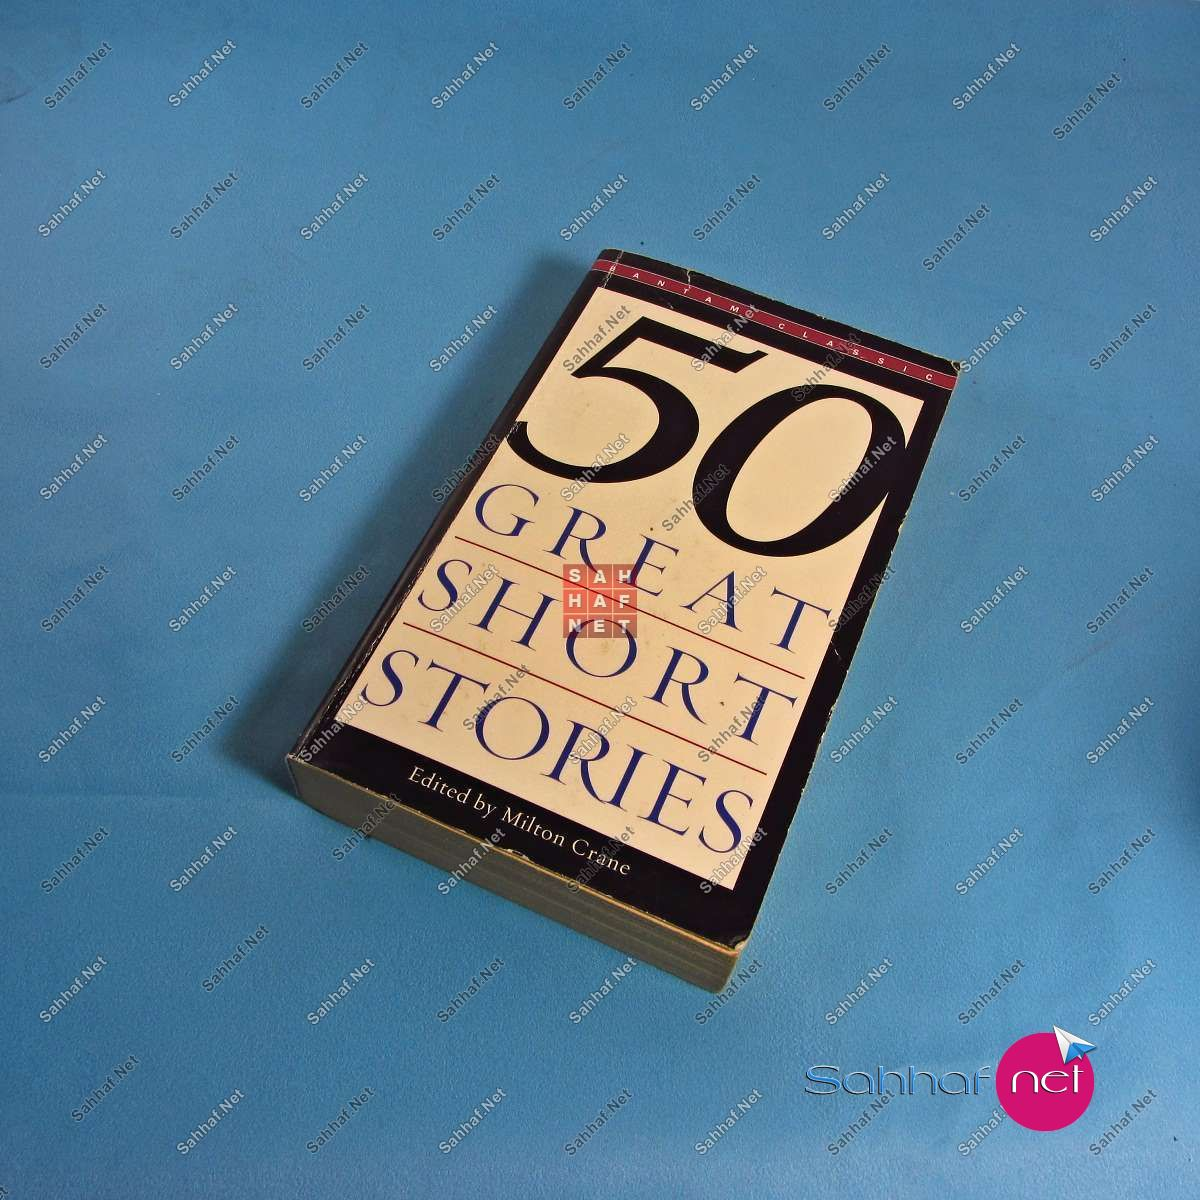 50 GREAT SHORT STORIES – Milton Crane Kitap